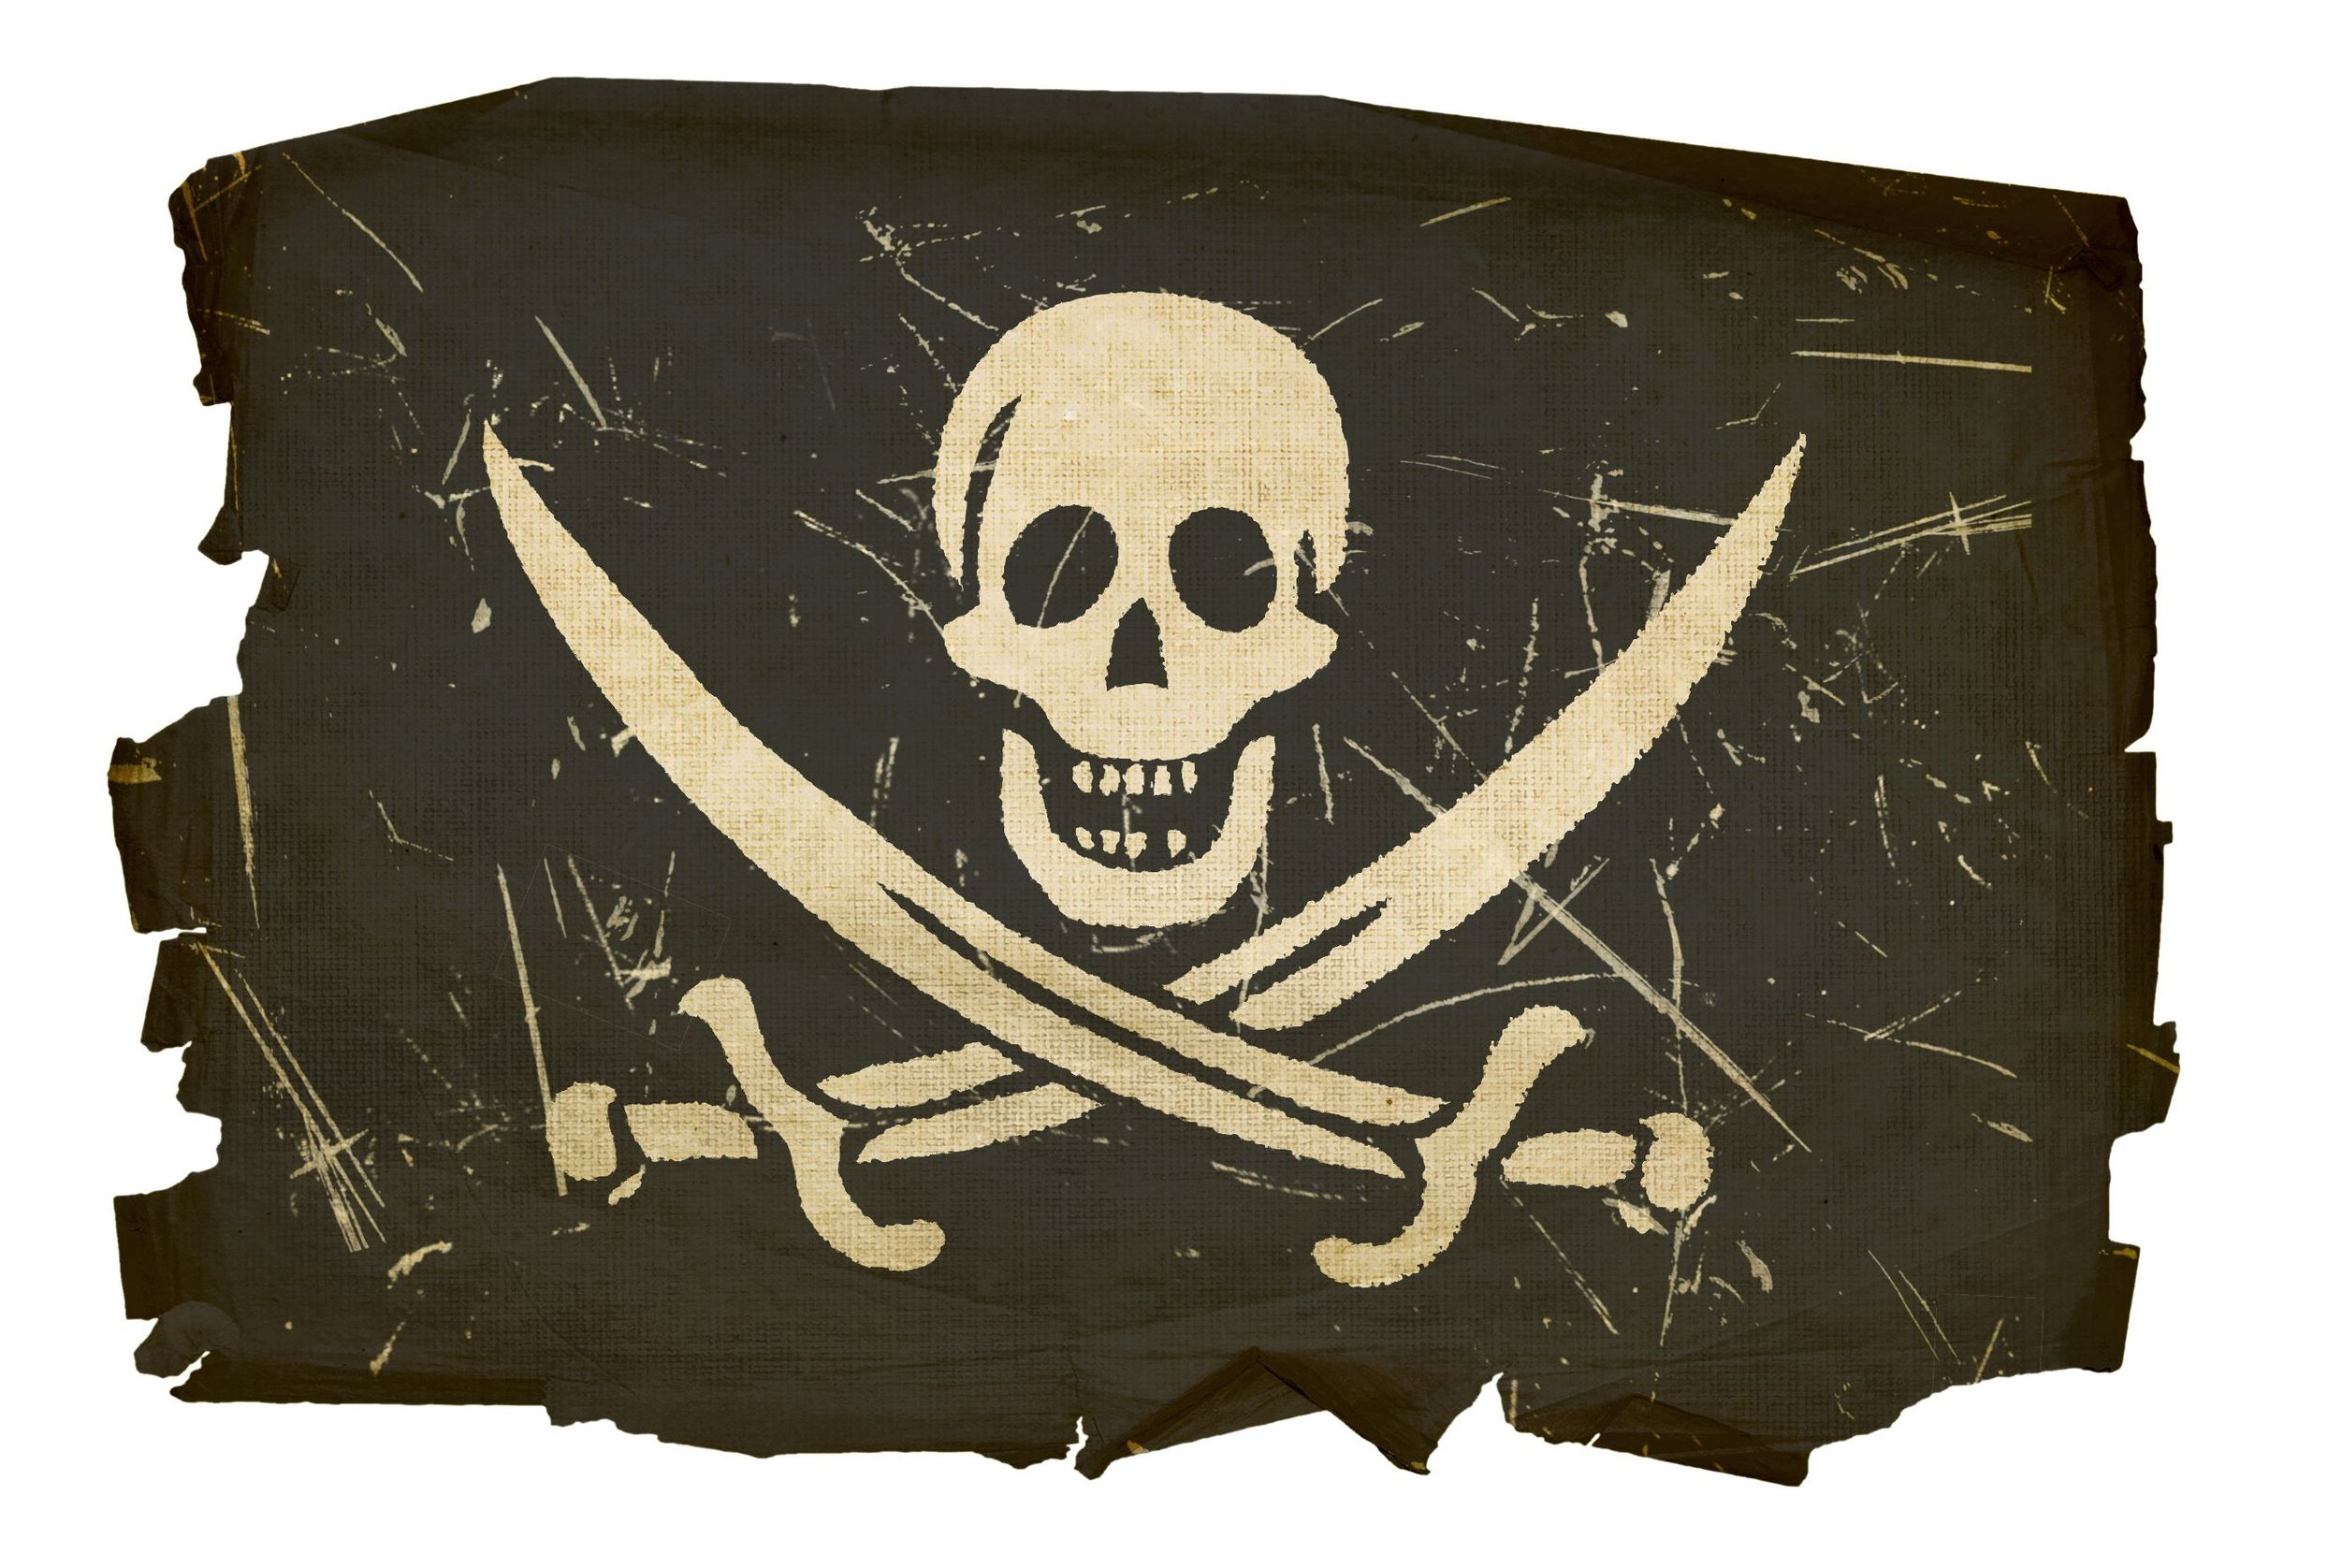 5458569 - pirate flag old, isolated on white background